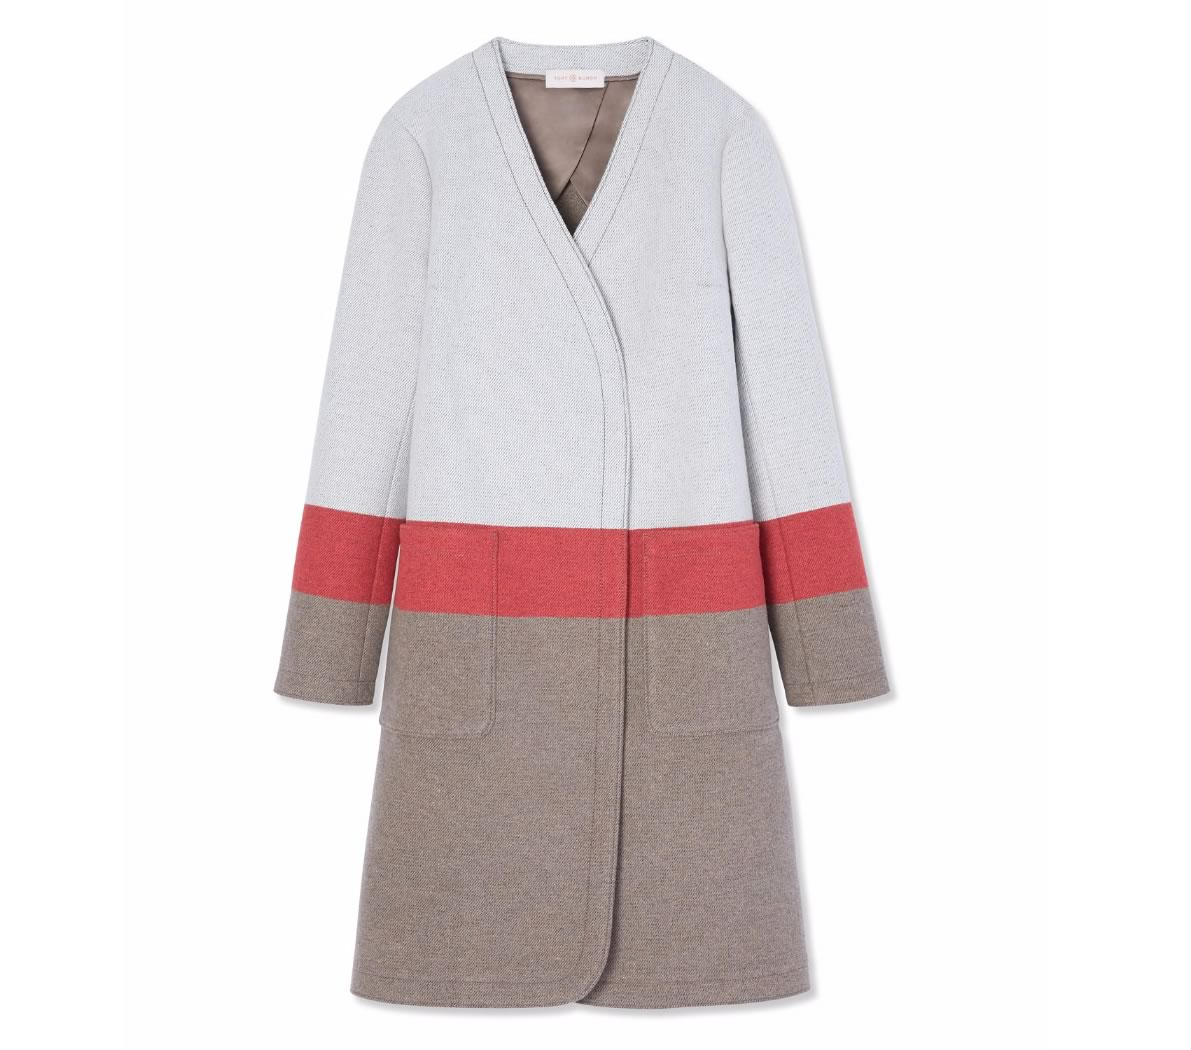 Tory Burch Stripe Blanket Coat